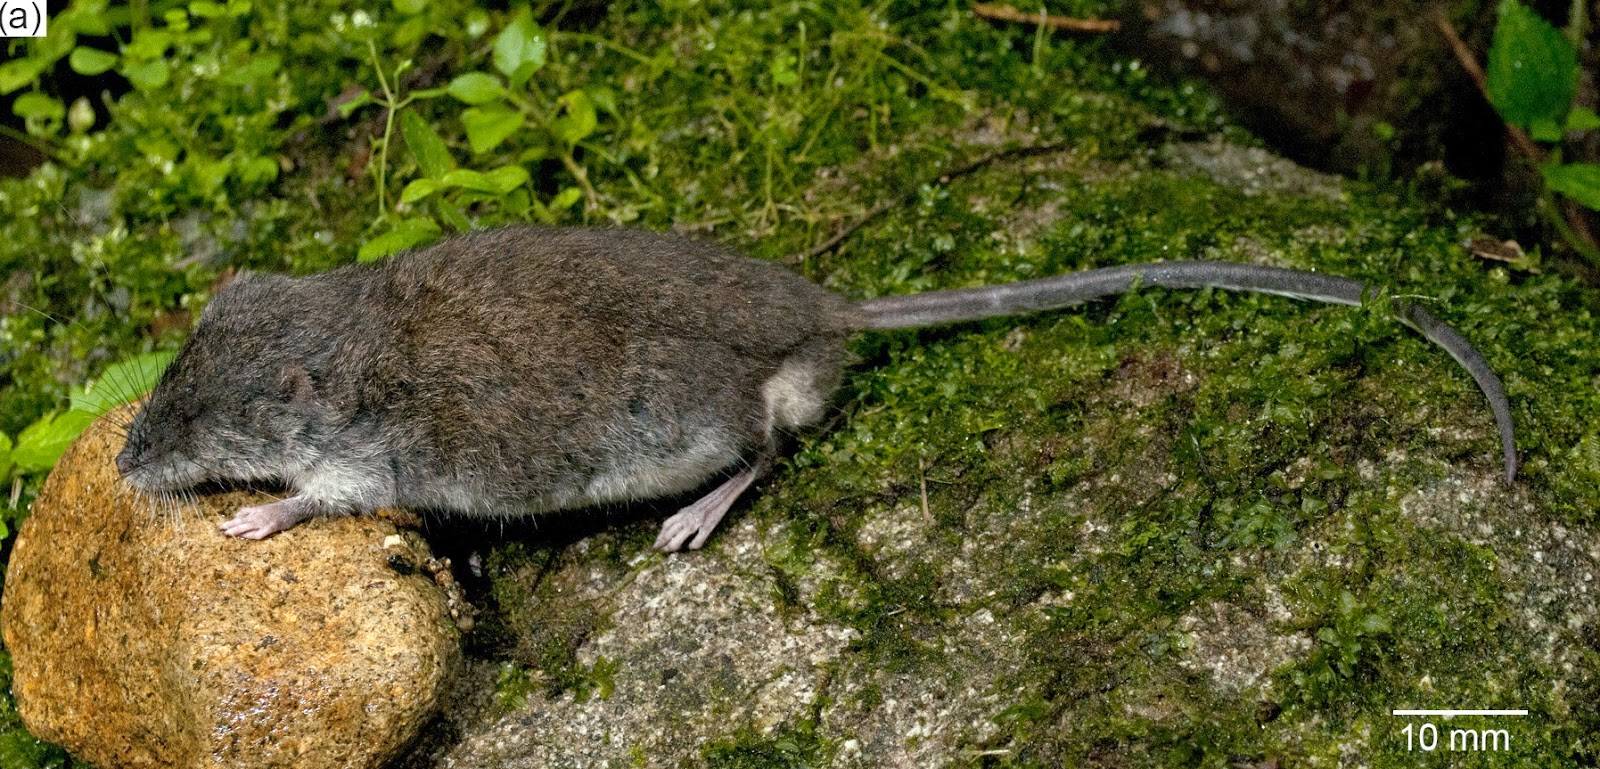 The Sulawesi water rat, Waiomys mamasae. Photo by Kevin Rowe